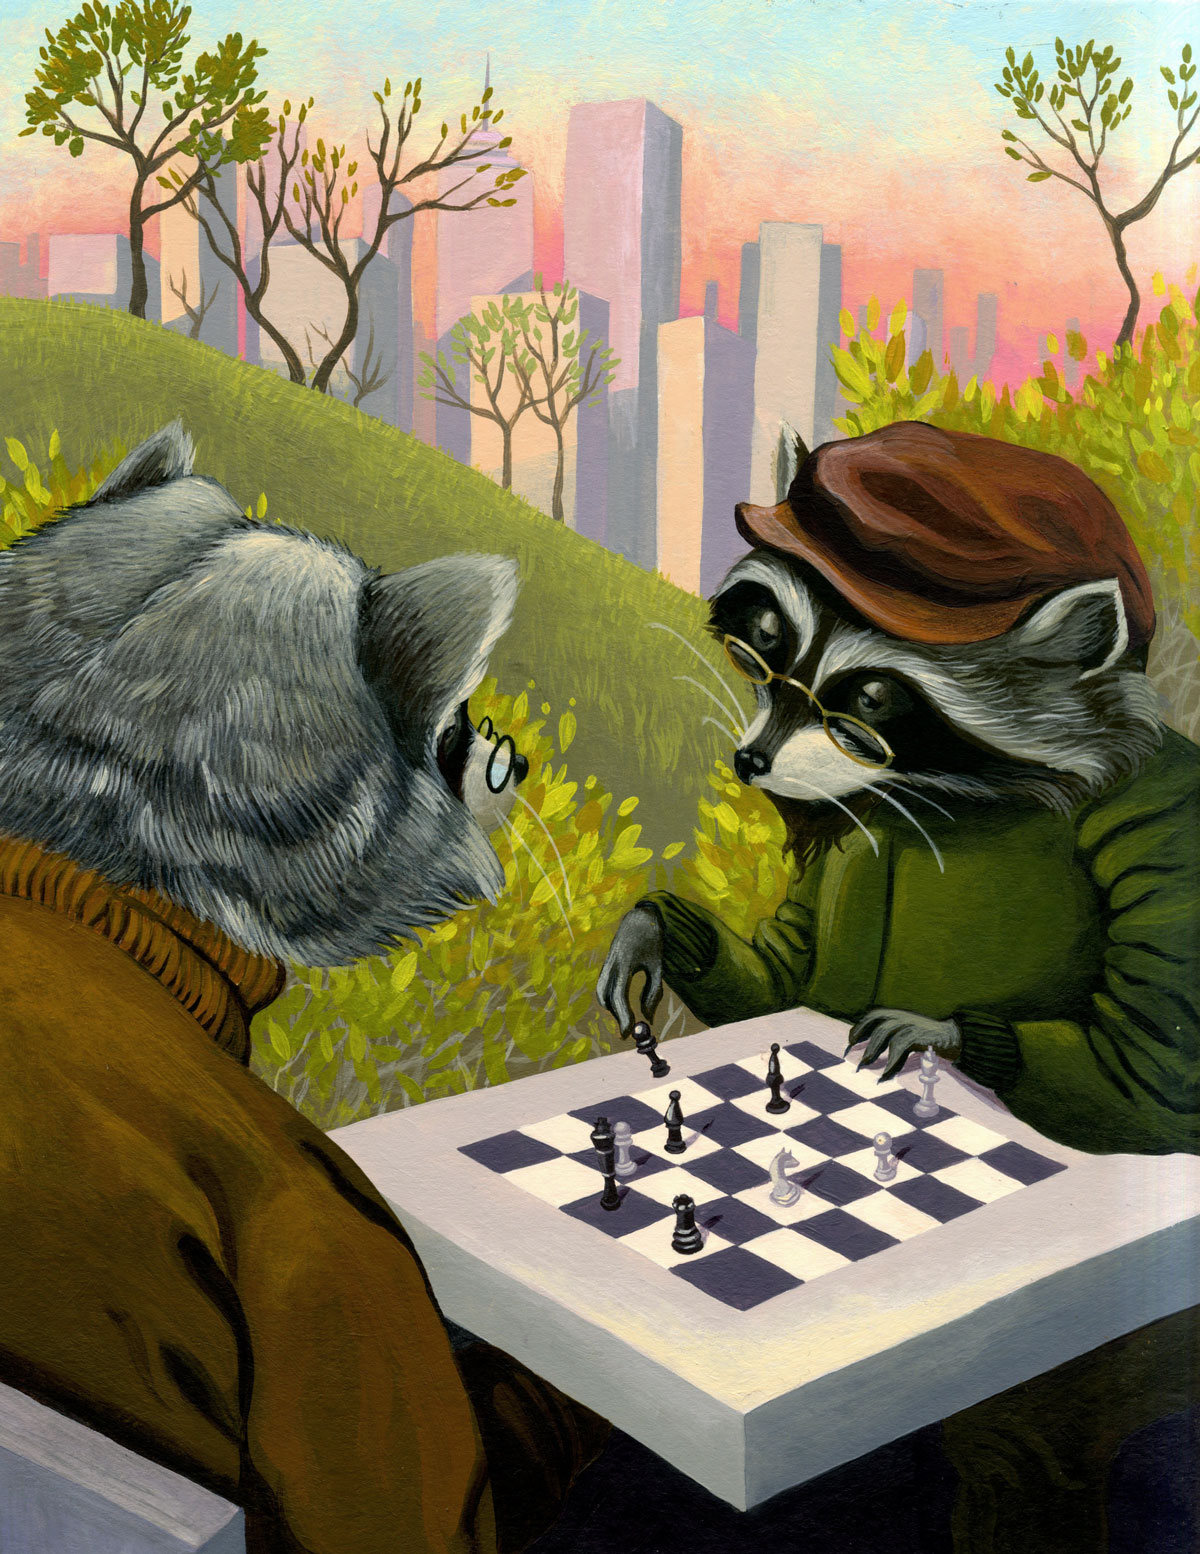 The Urban Raccoon by Erin Fitzgerald